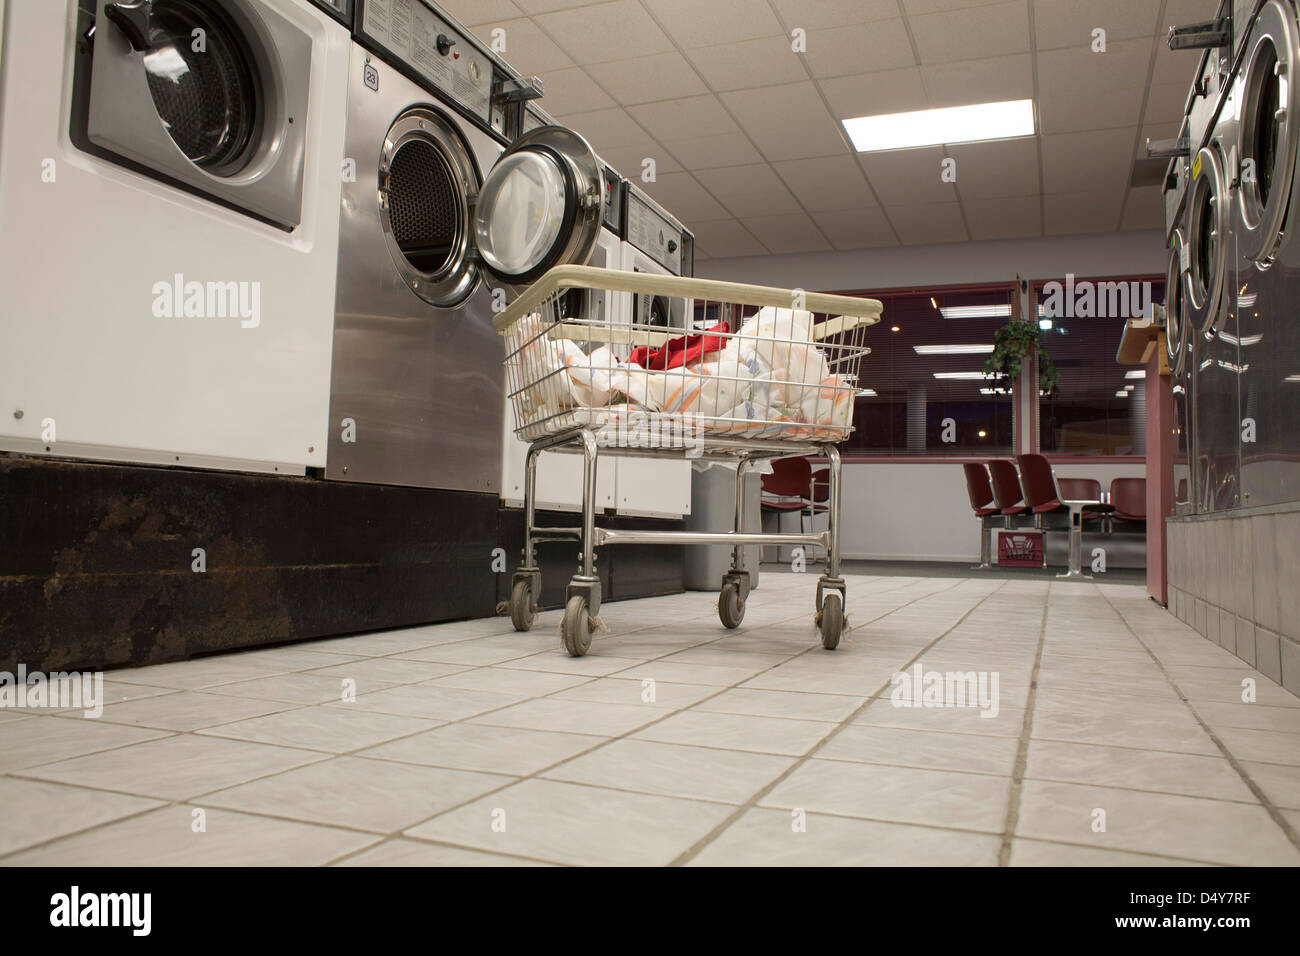 Laundromat in North Adams Massachusetts during a slow evening. - Stock Image